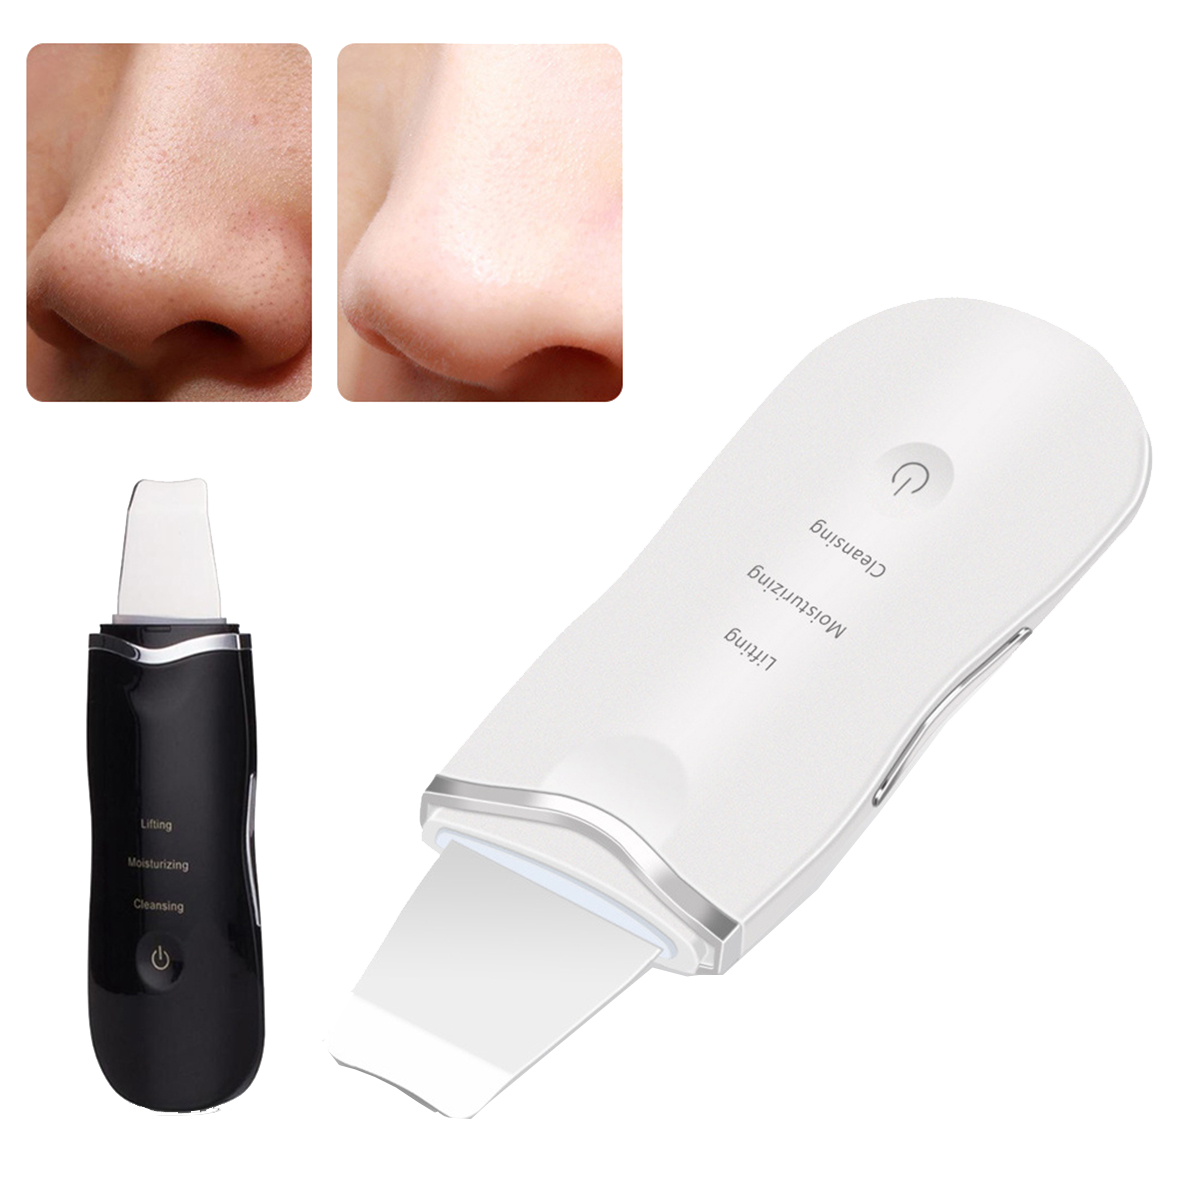 Faceou™ Ultrasonic Face Cleaning Skin Scrubber